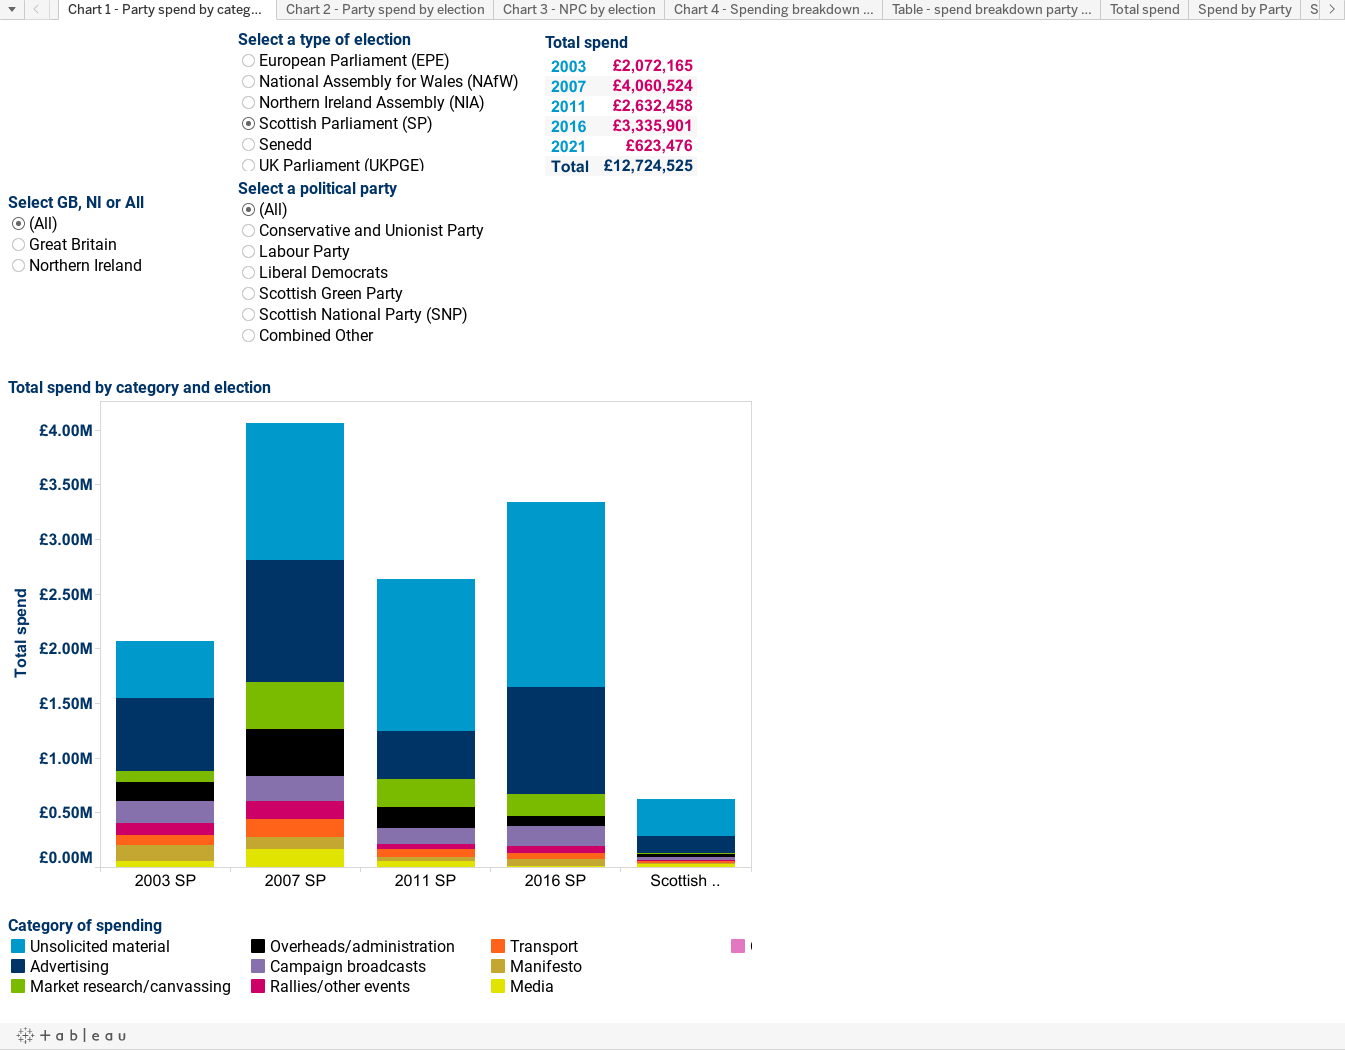 Chart 1 - Party spend by category